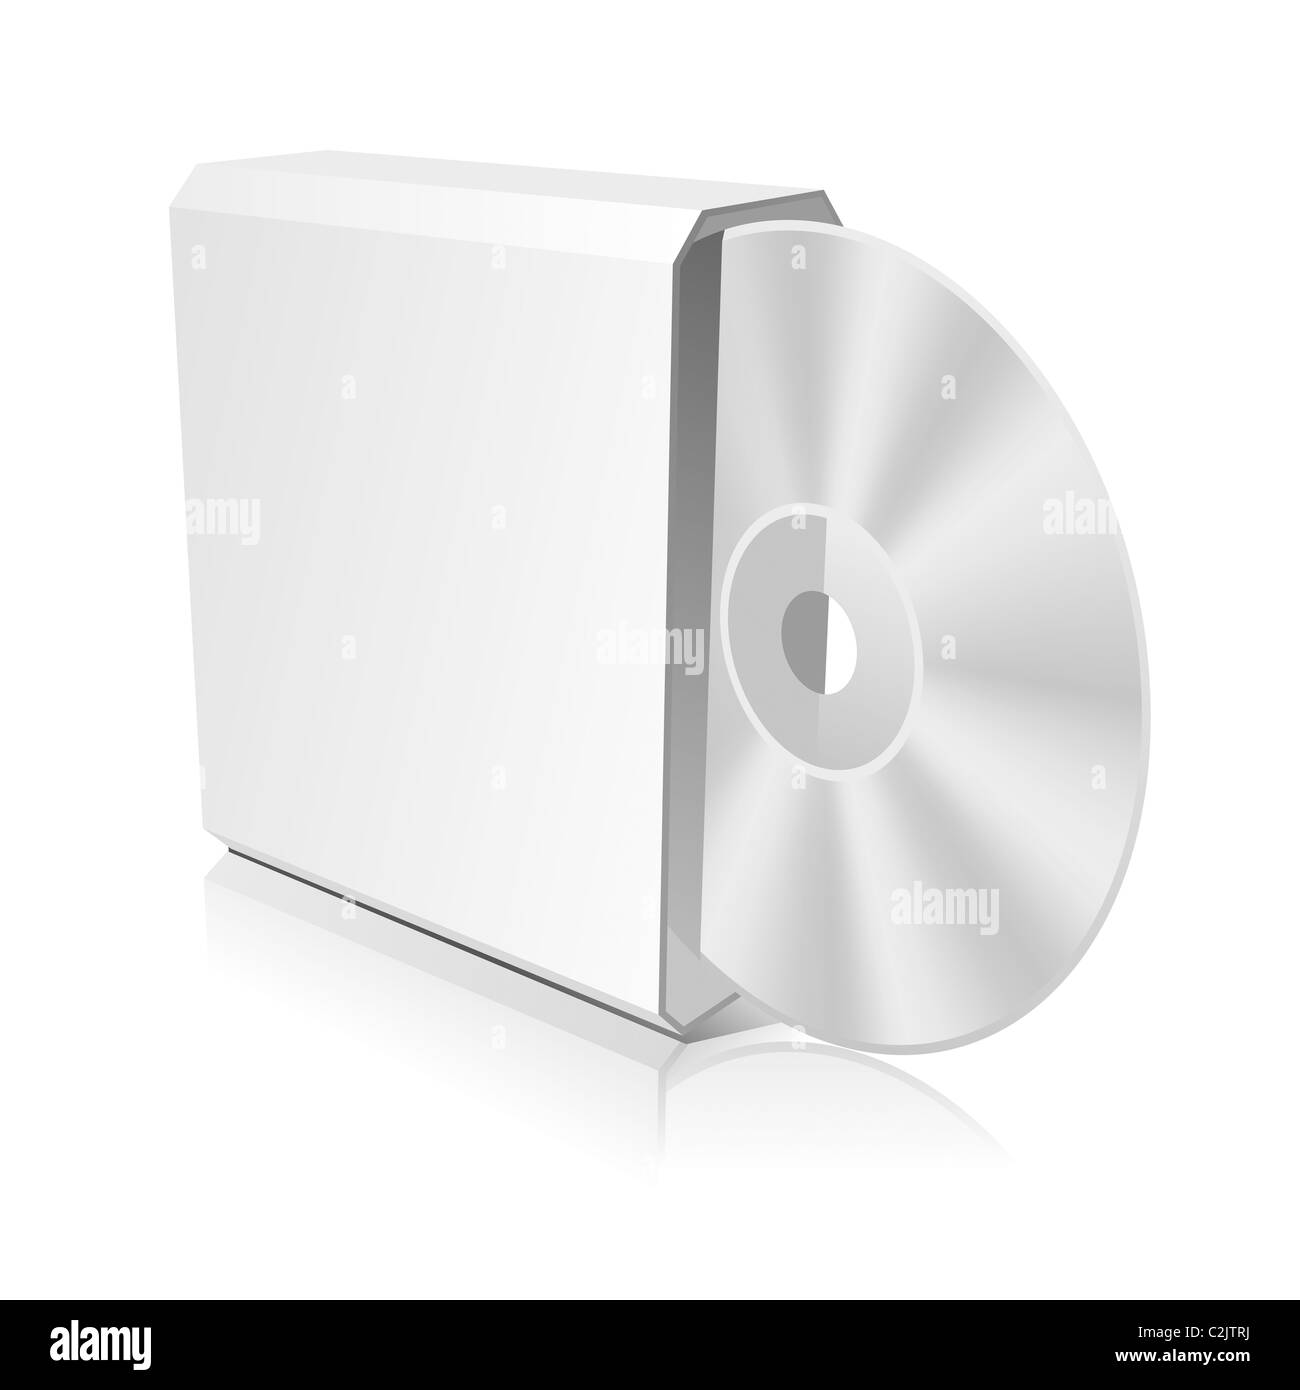 Cd Box With Cd Dvd Template Stock Photo 36064662 Alamy